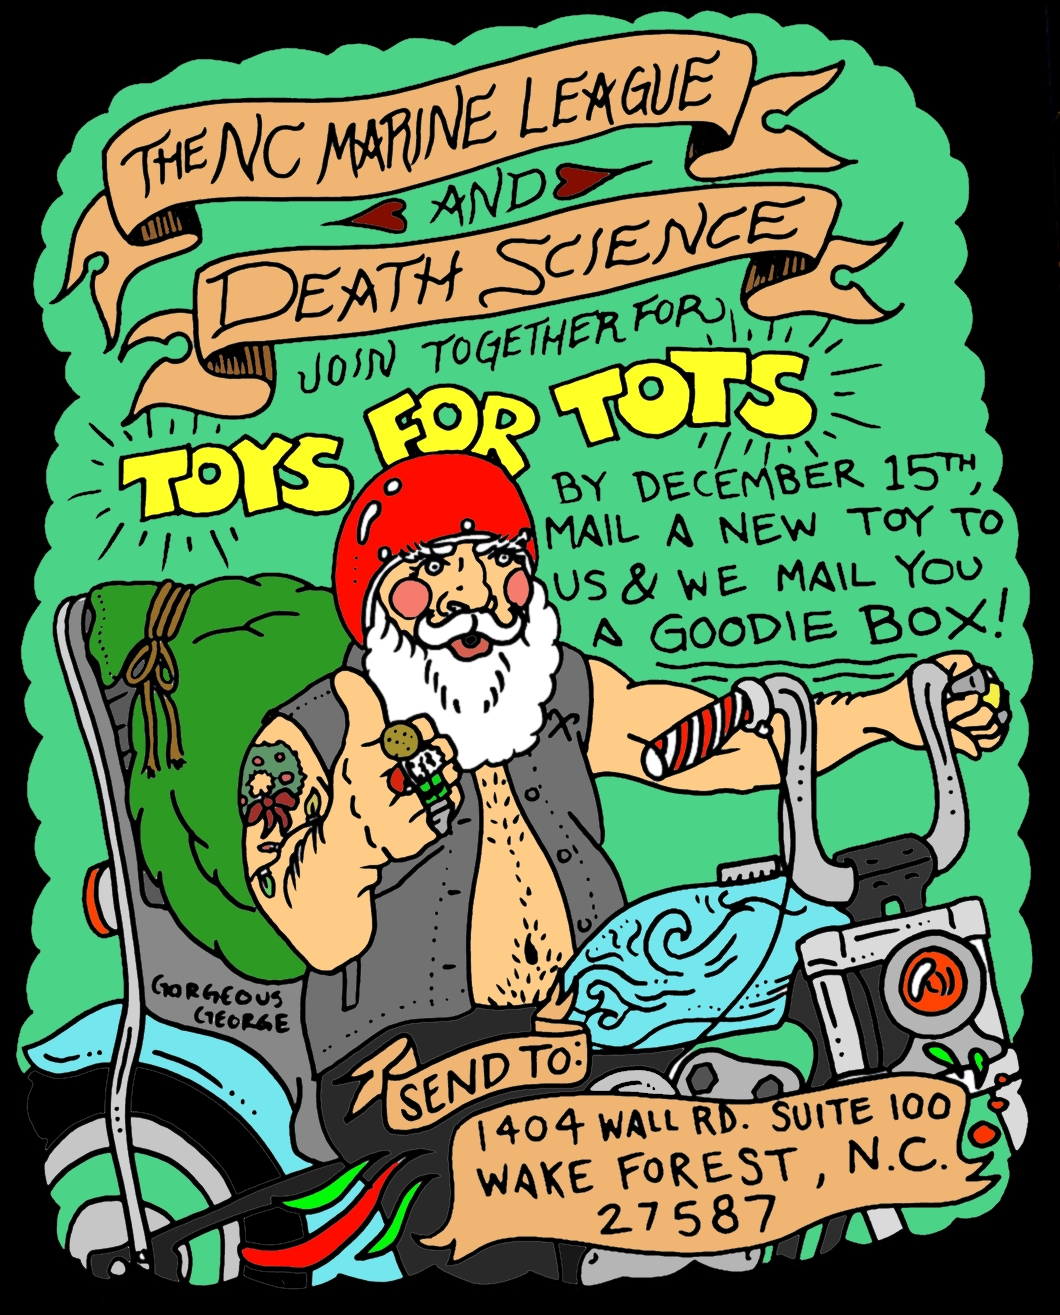 Coloring Page Toys For Tots : Death science